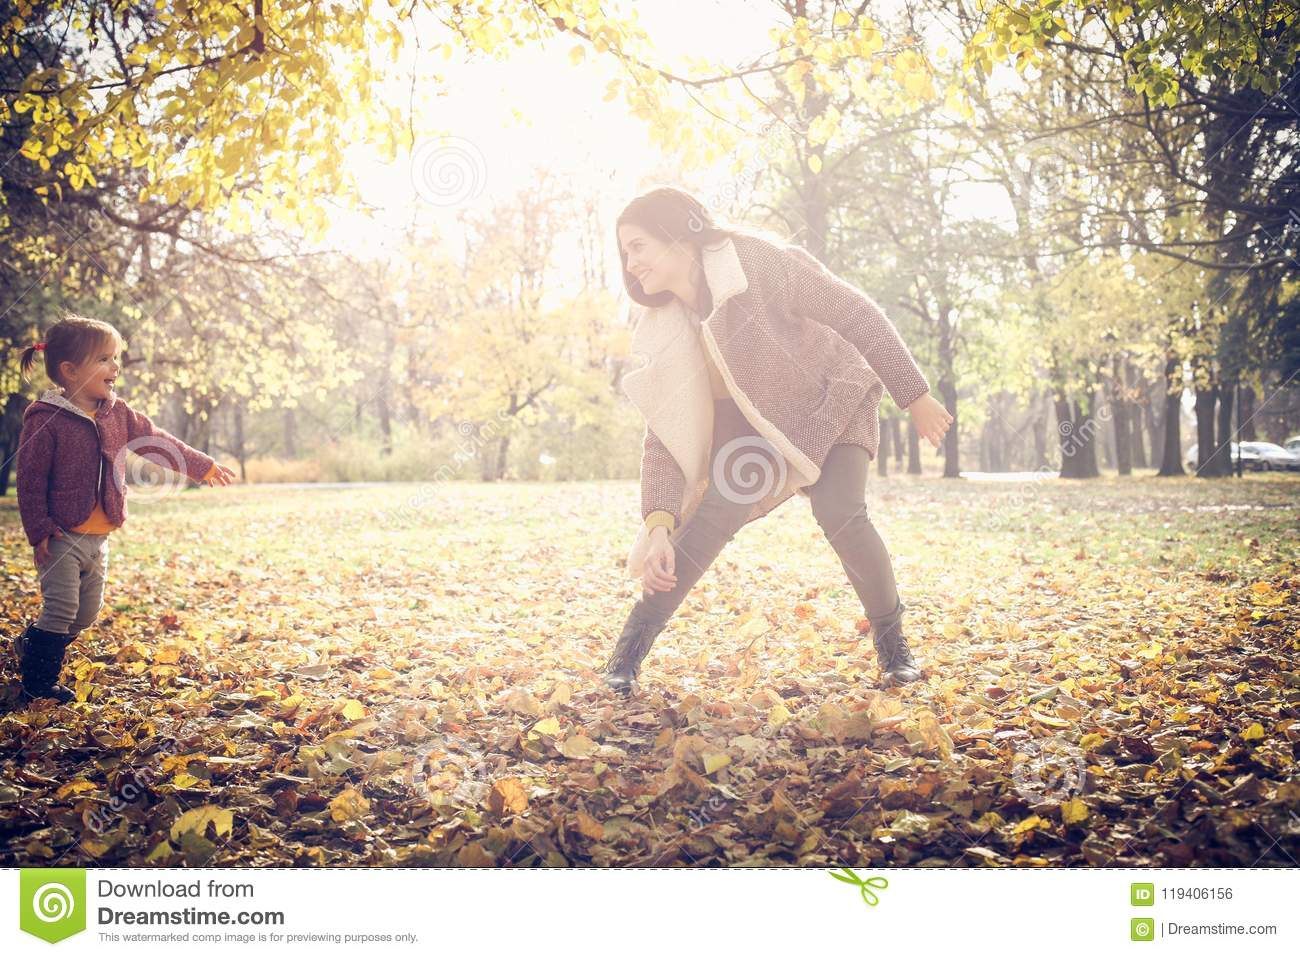 Playing in nature. Autumn sunny day.